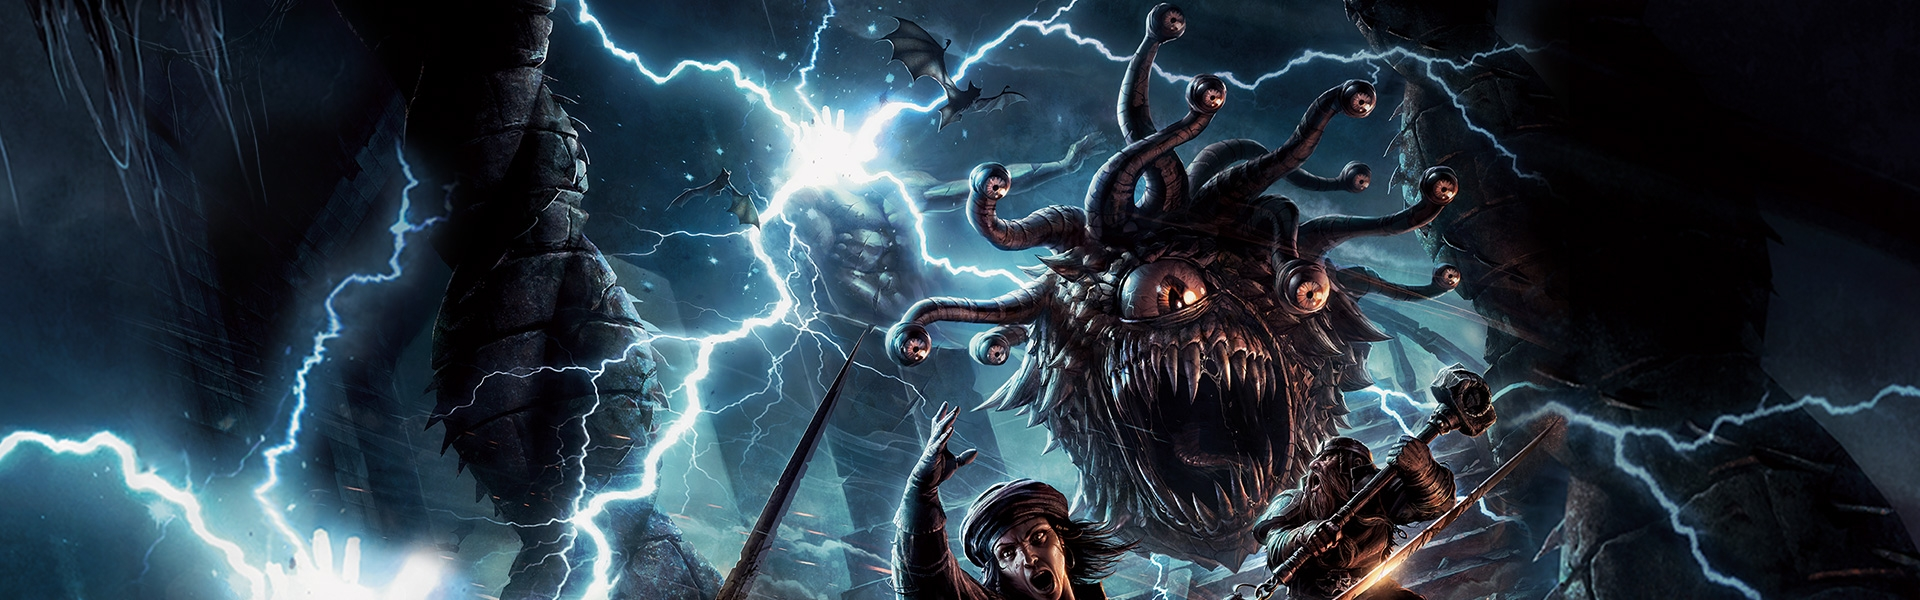 monster_beholder_header